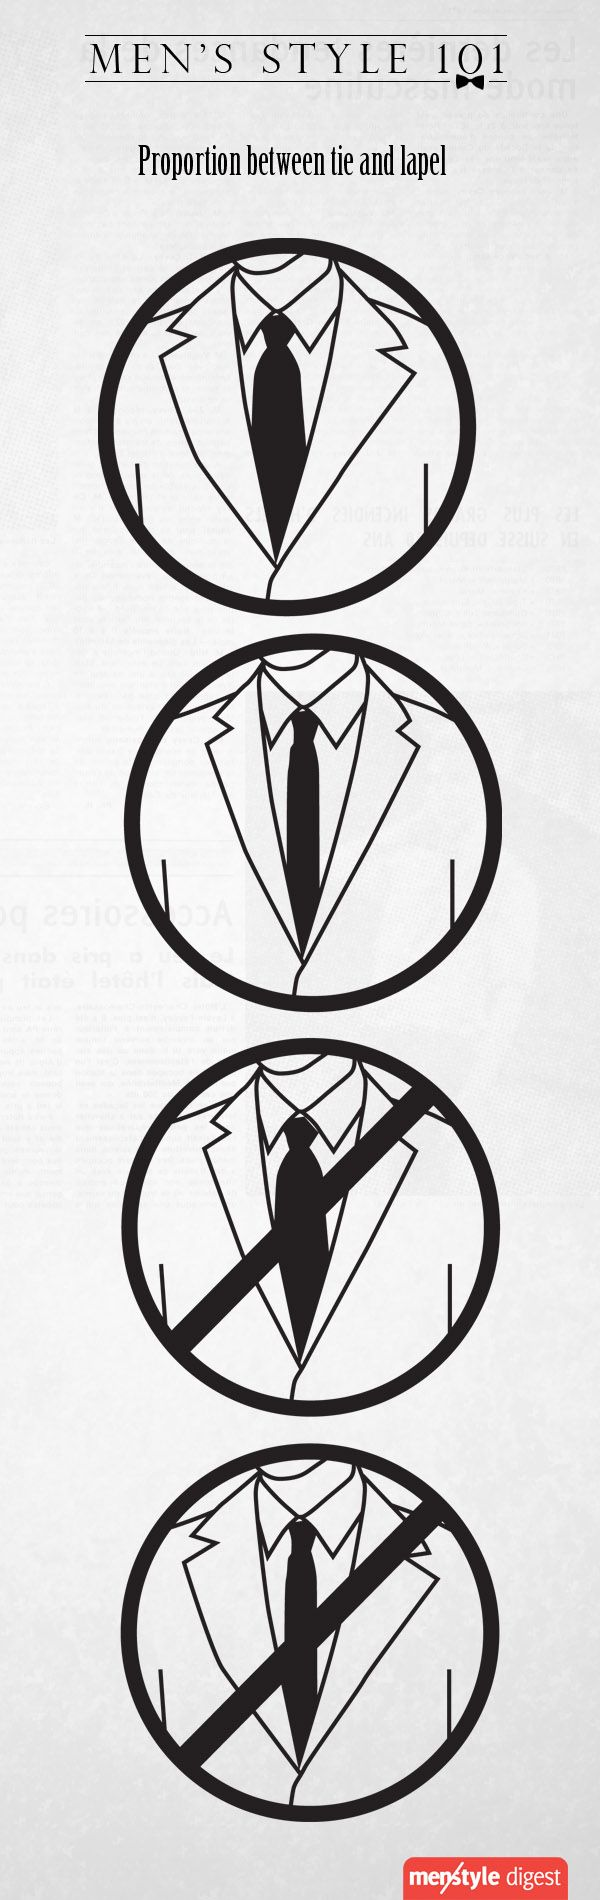 Not sure which tie goes with which suit jacket? Here's a quick cheat sheet on how to pair your tie with your suit jacket's lapel.